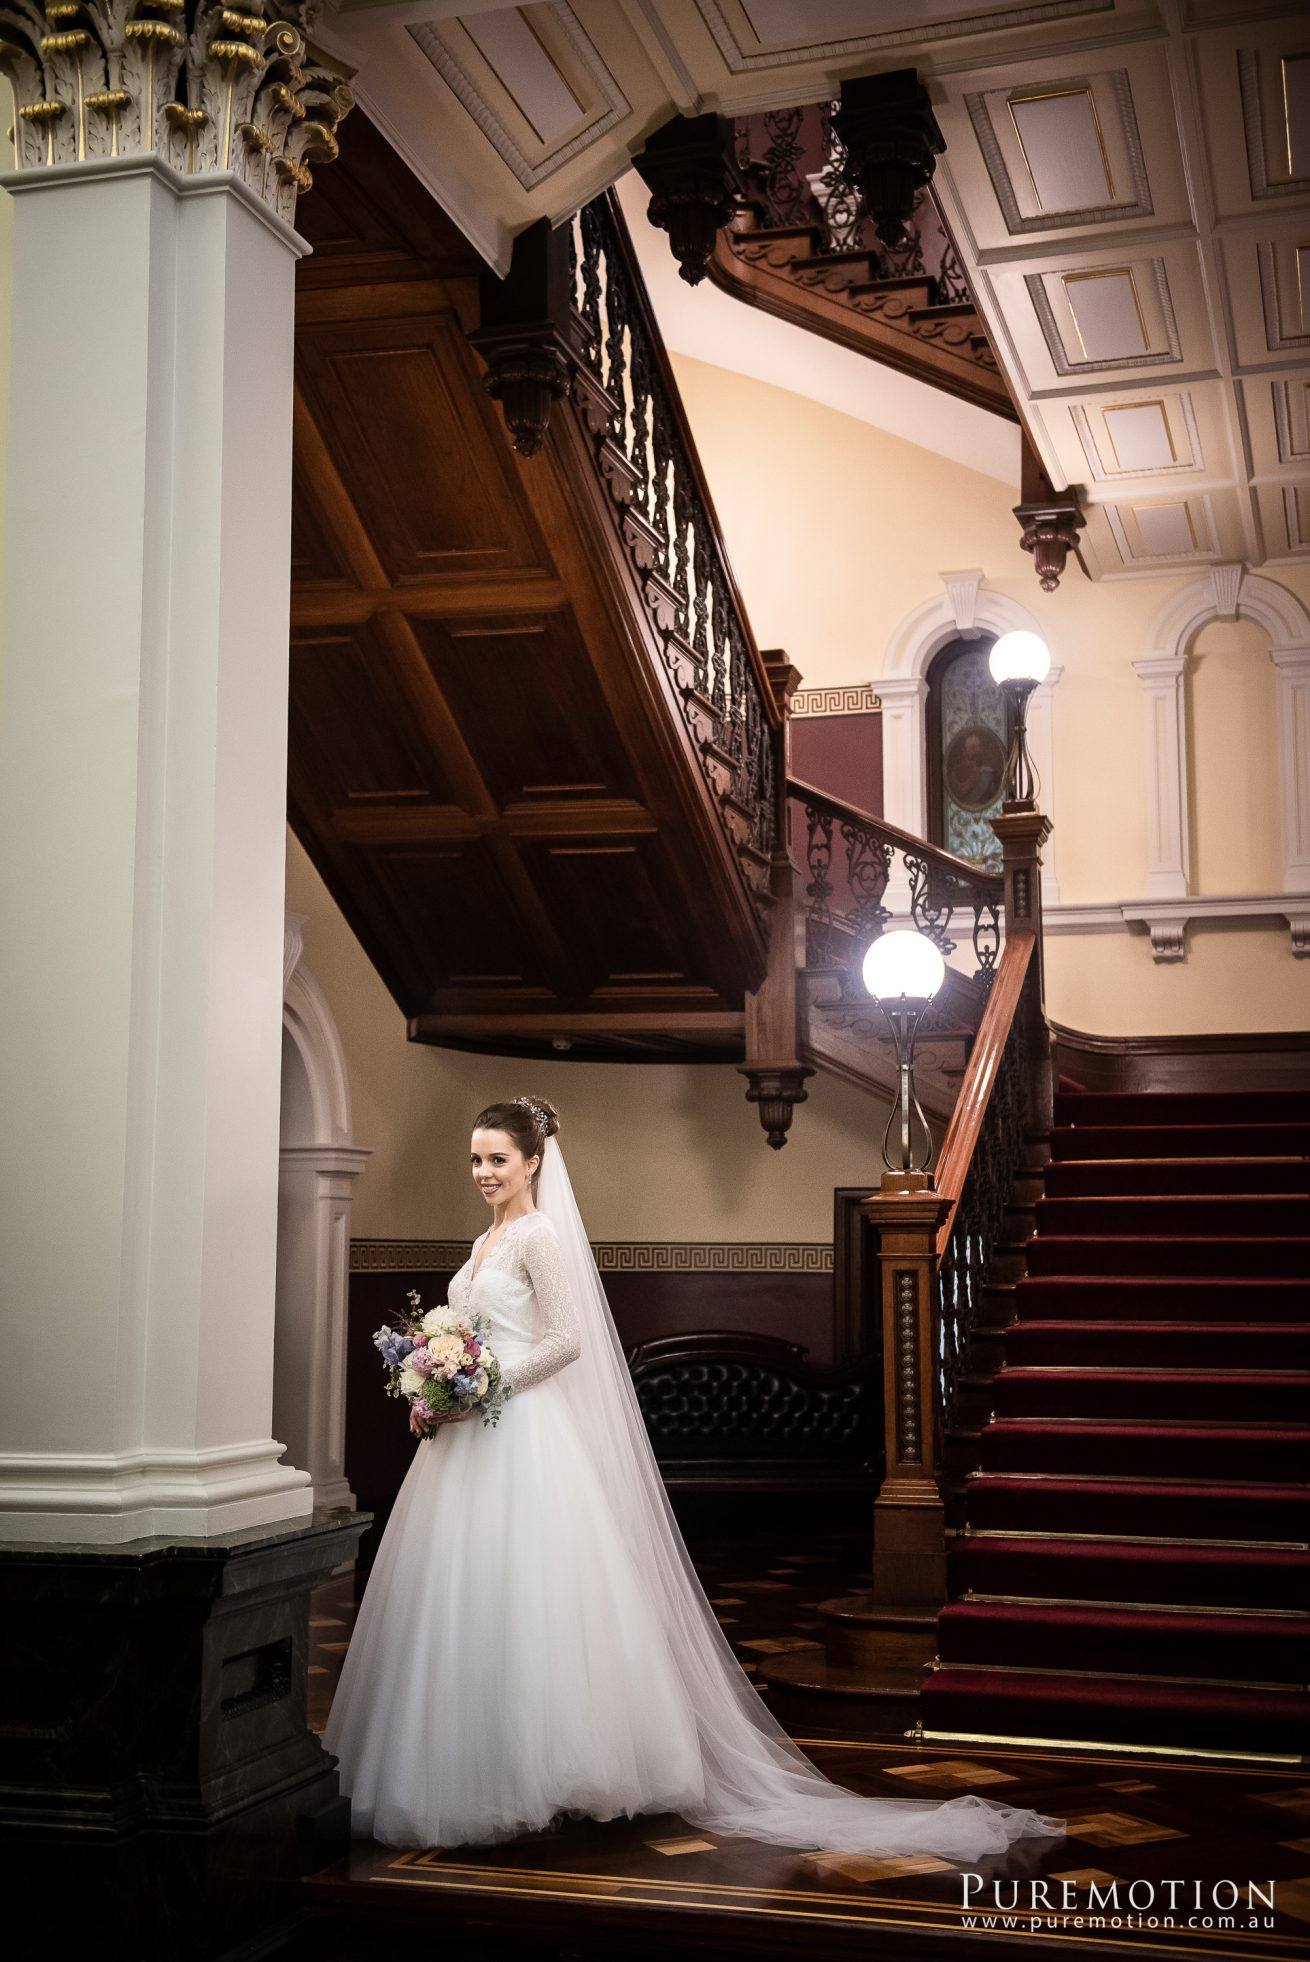 190517 Puremotion Wedding Photography Alex Huang Brisbane EmmaBen-0058